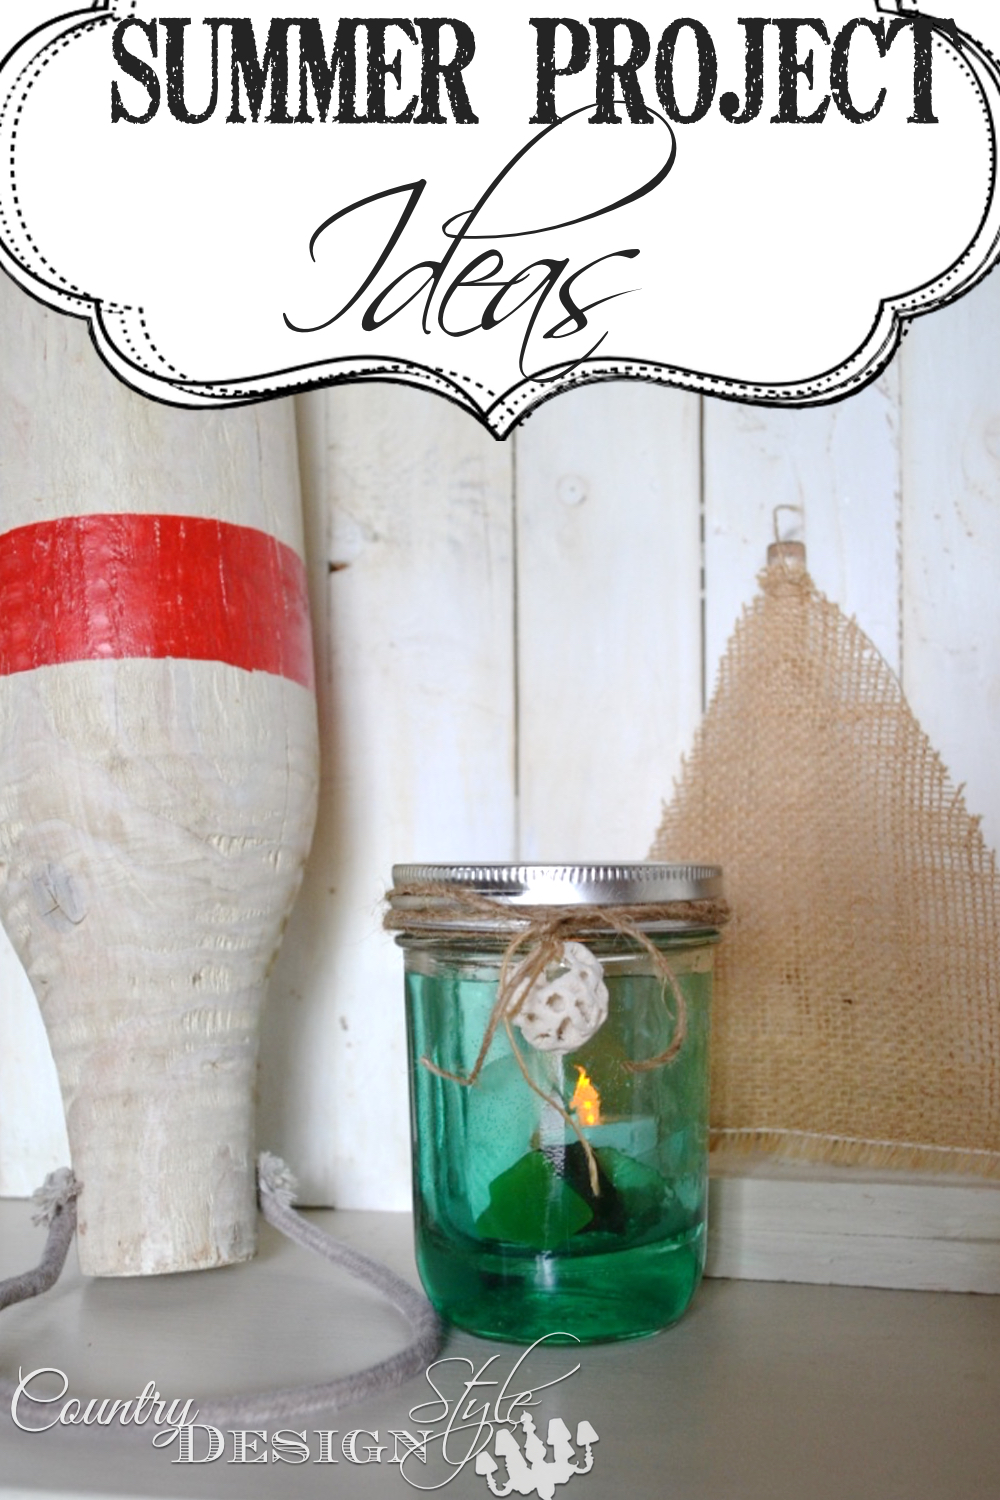 Kids getting restless over summer?  Here's some easy summer project ideas.  Great for adults and the kiddos.  Country Design Style